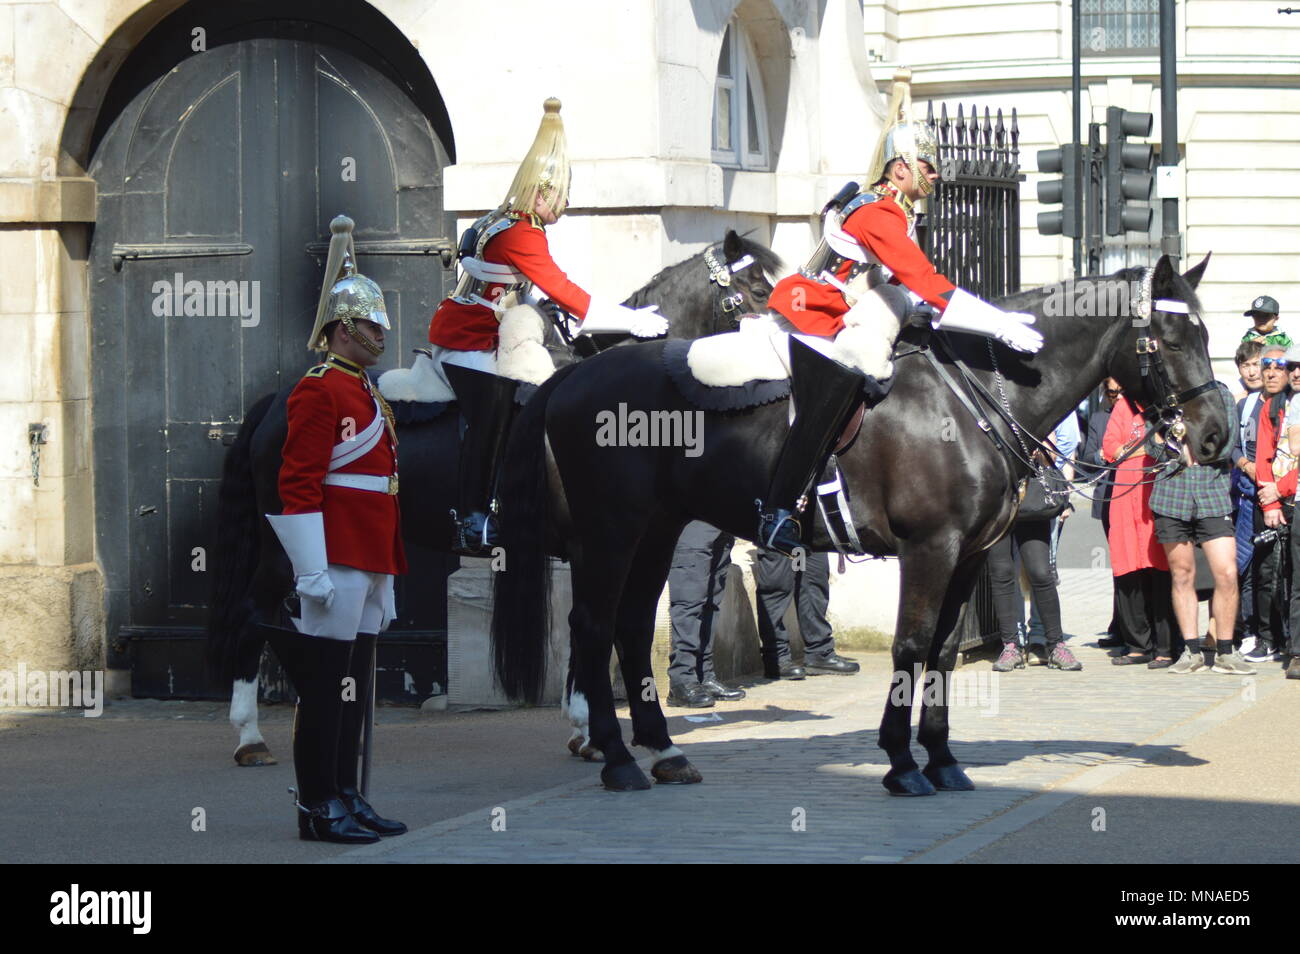 The 4 pm Dismounting Ceremony at Horse Guards Parade is every day 365 days a year. The Queens Life Guards have been at Horse Guards Parade since the Restoration King Charles II in 1660. The Queens Life Guards is one of two Senior Household Cavalry Regiment. When the Queen is in Residence at Buckingham Palace, The Guard consists of one Officer, One Corporal Major, two Non Commissioned Officers, One Trumpeter and Ten troopers. This is known as the Long Guard Stock Photo